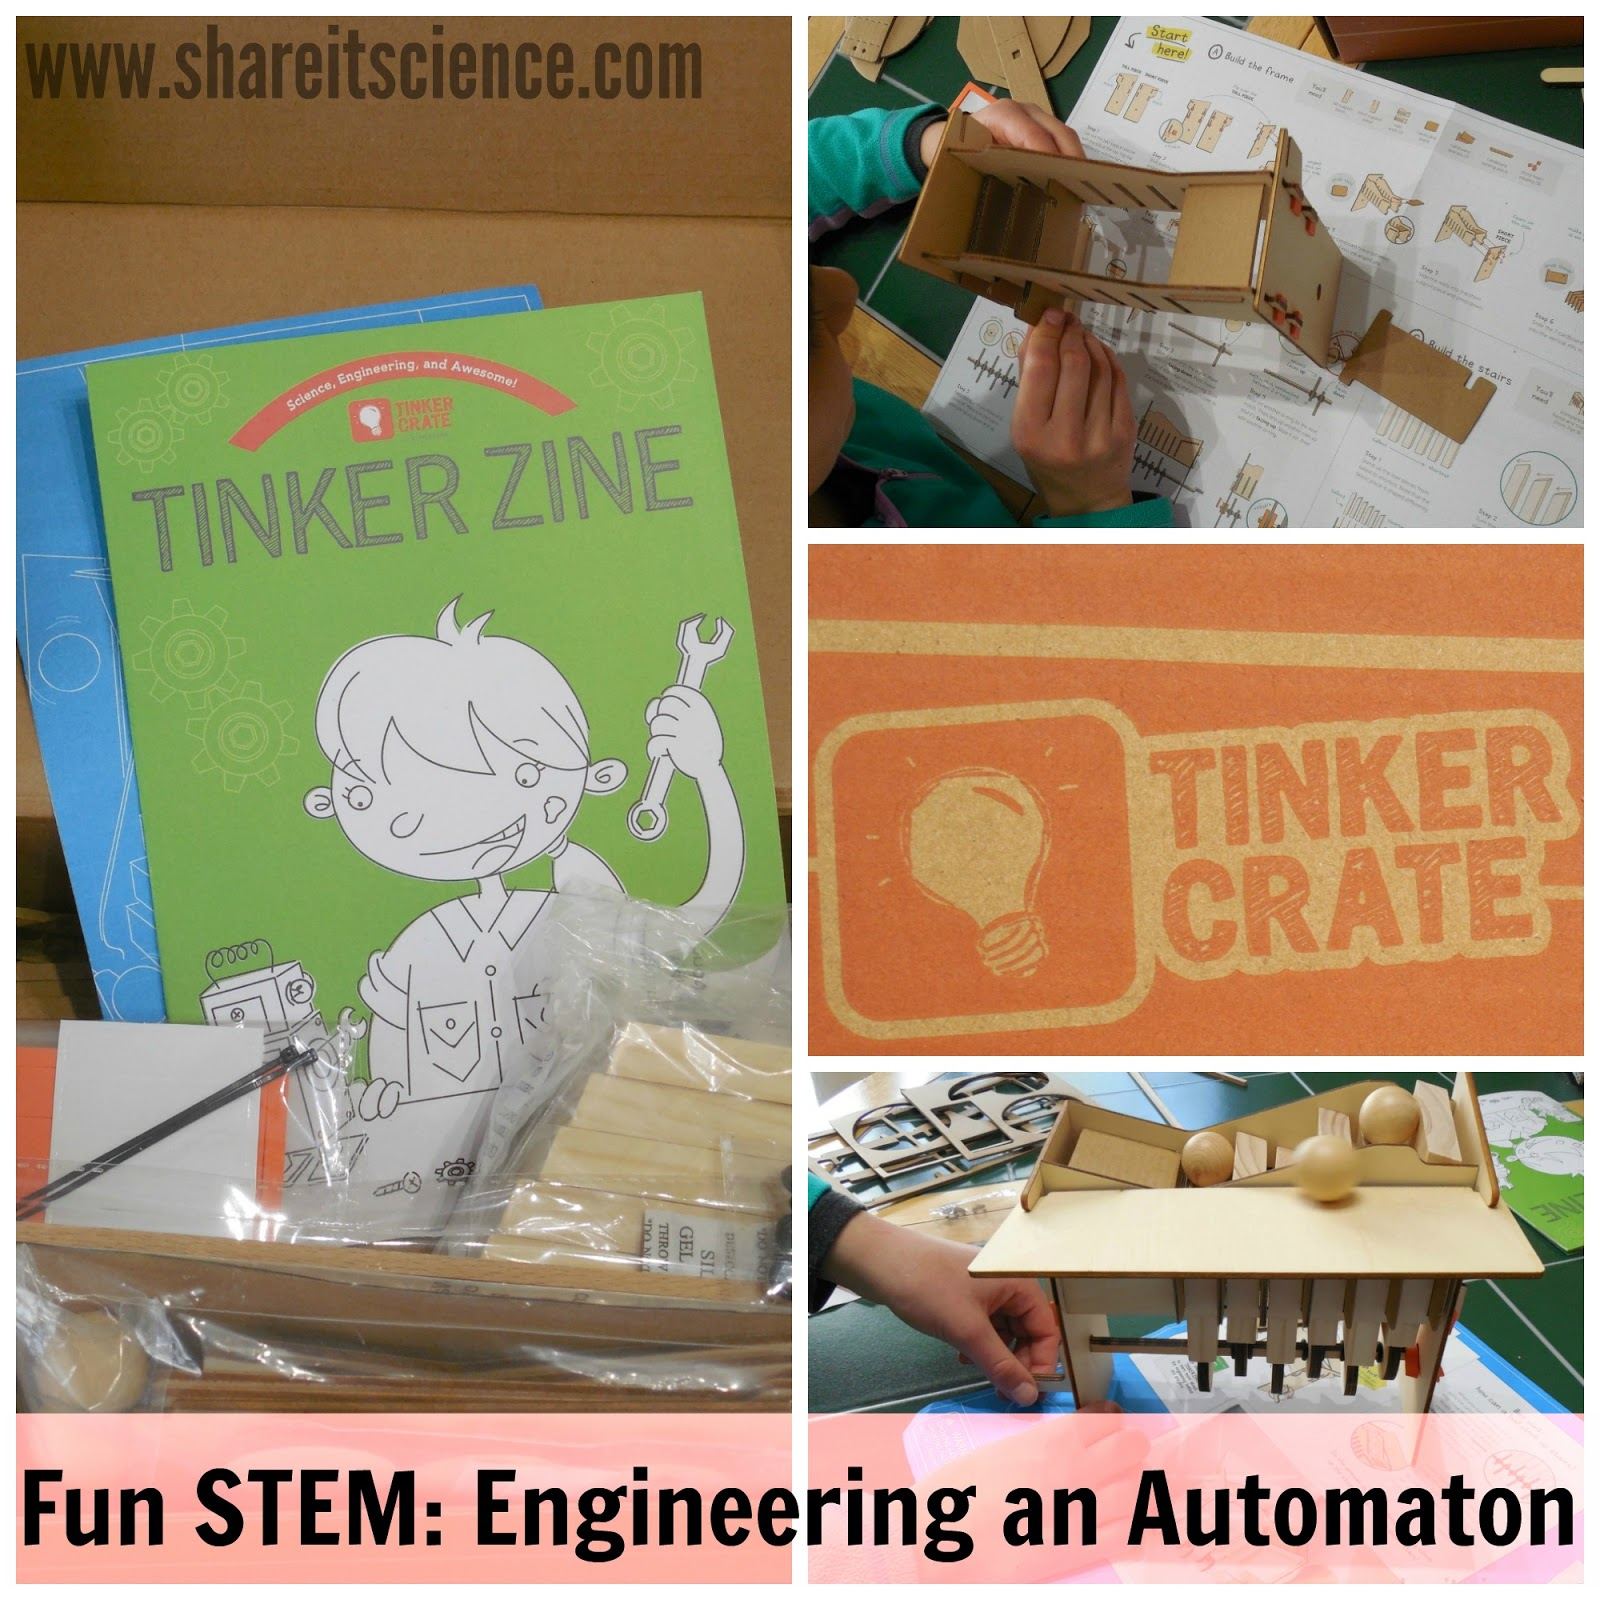 Share It Science Build Your Own Automaton Fun Stem